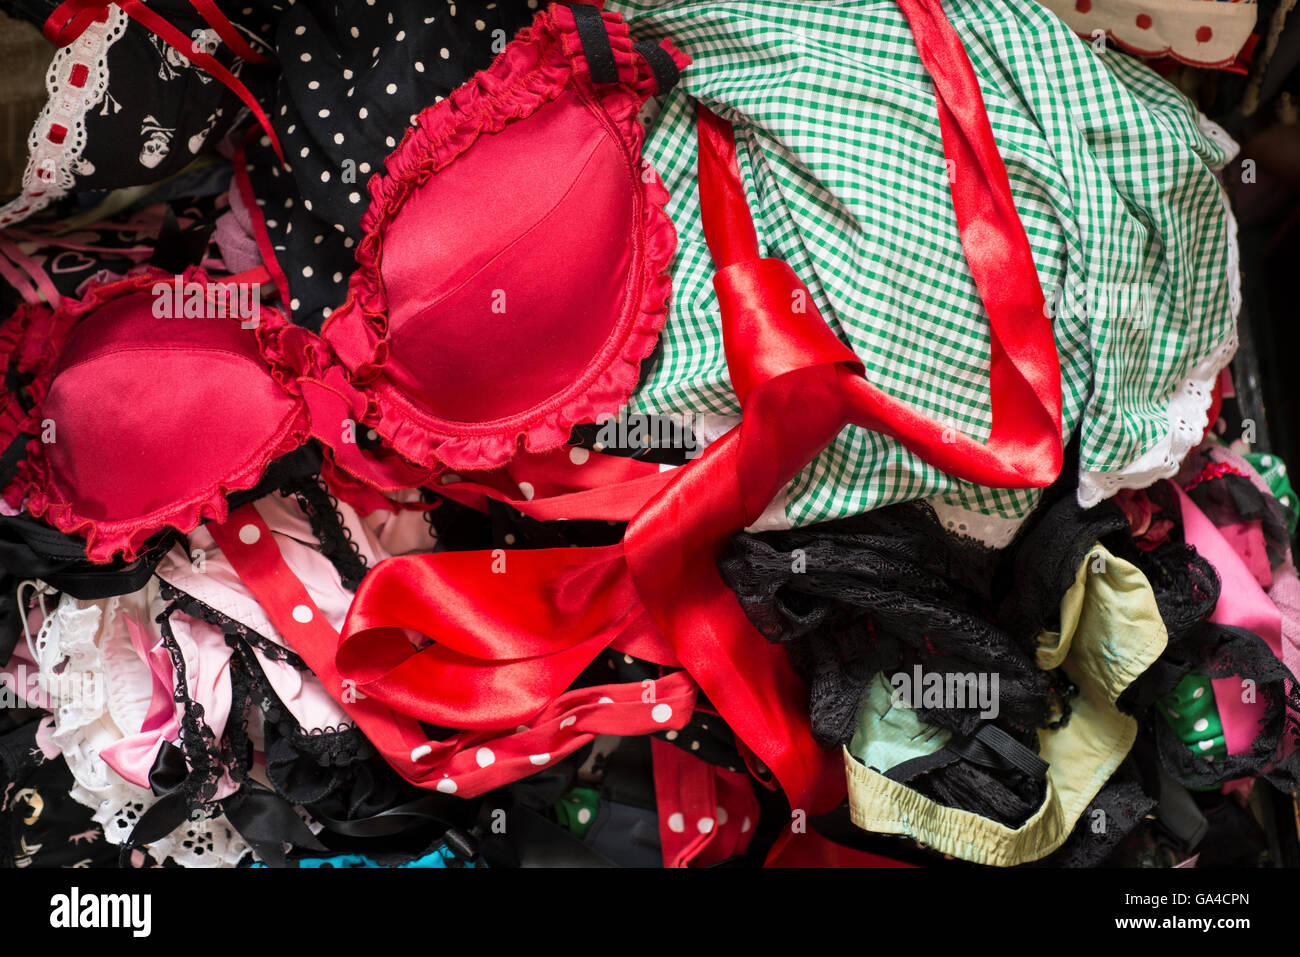 A red brassiere on a heap of assorted garments. - Stock Image